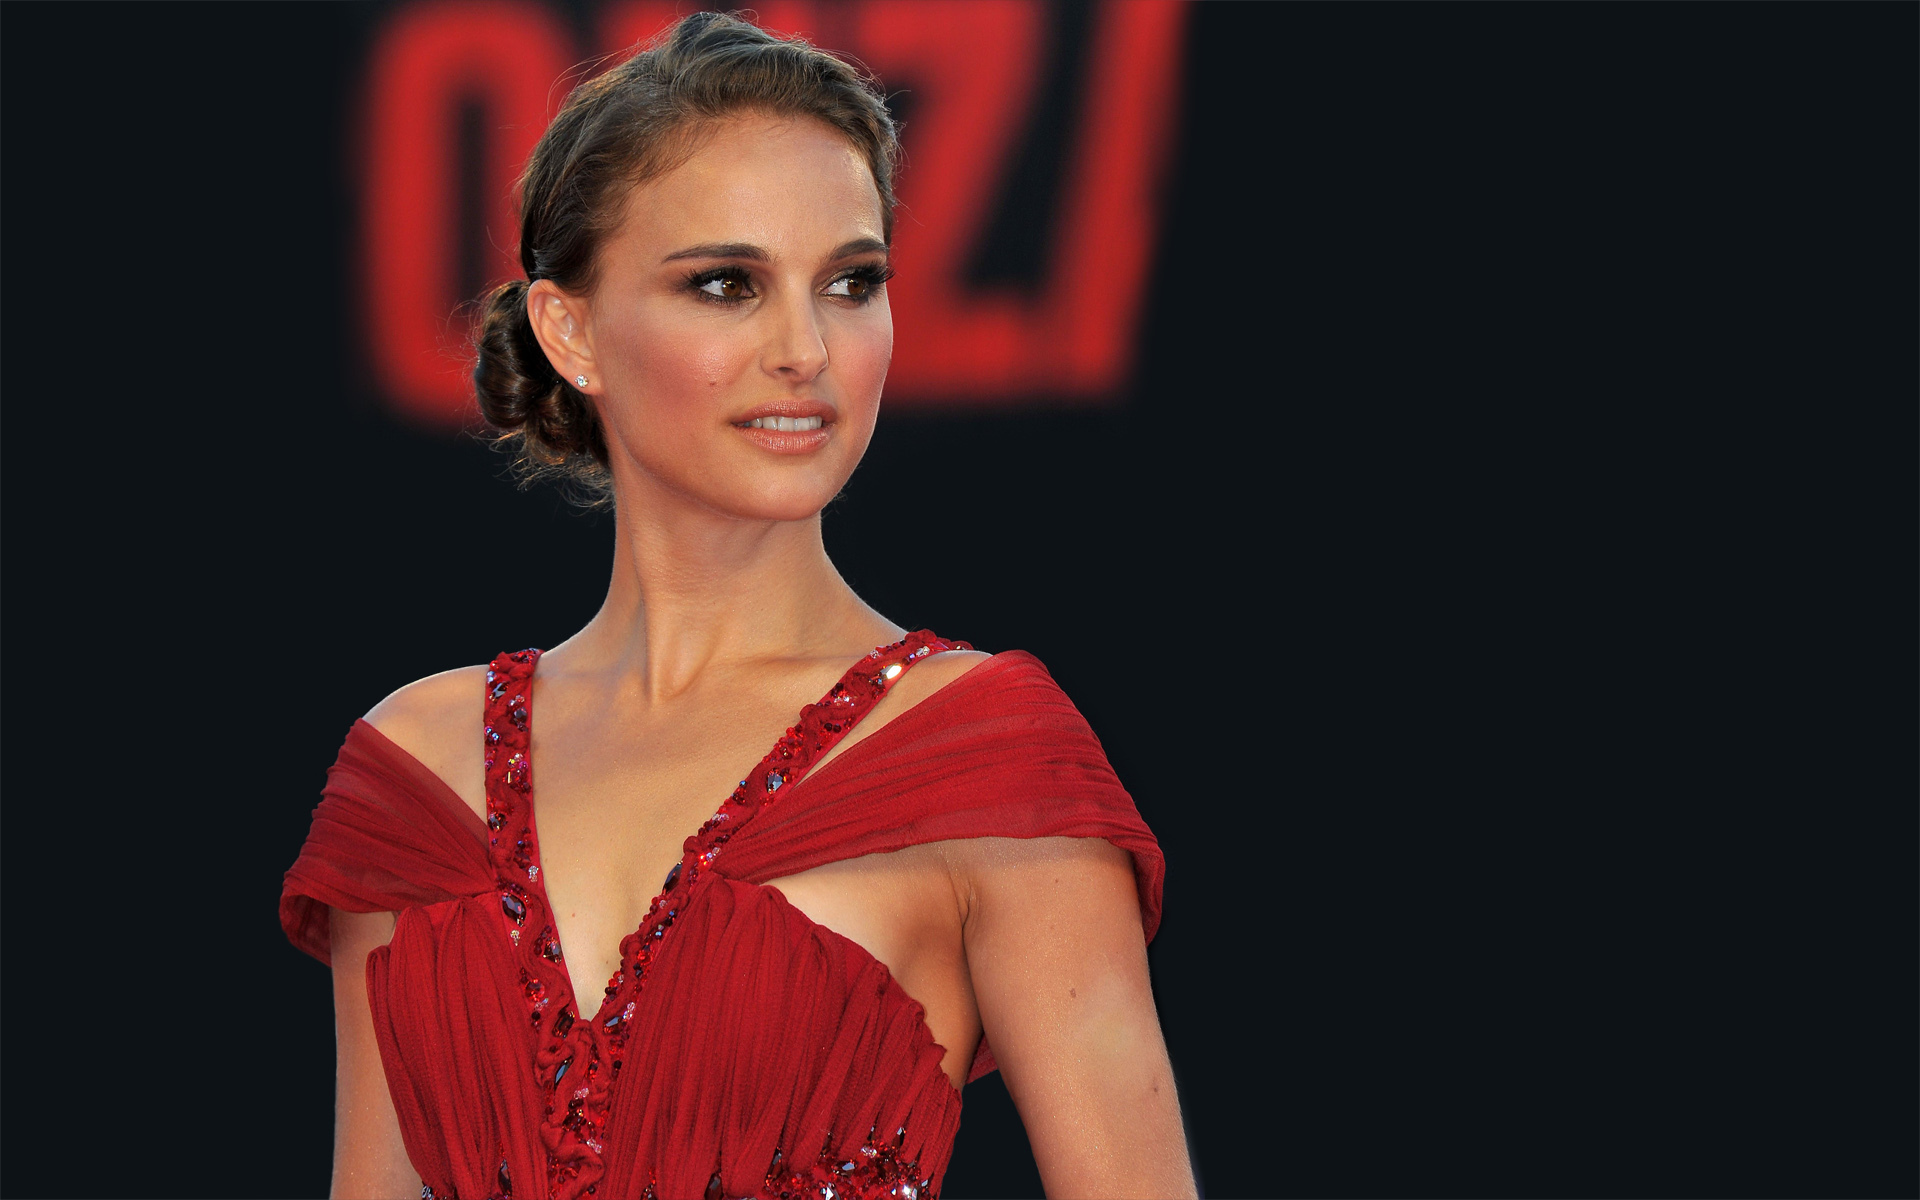 Natalie Portman y su embarazo protagonizan video de James Blake